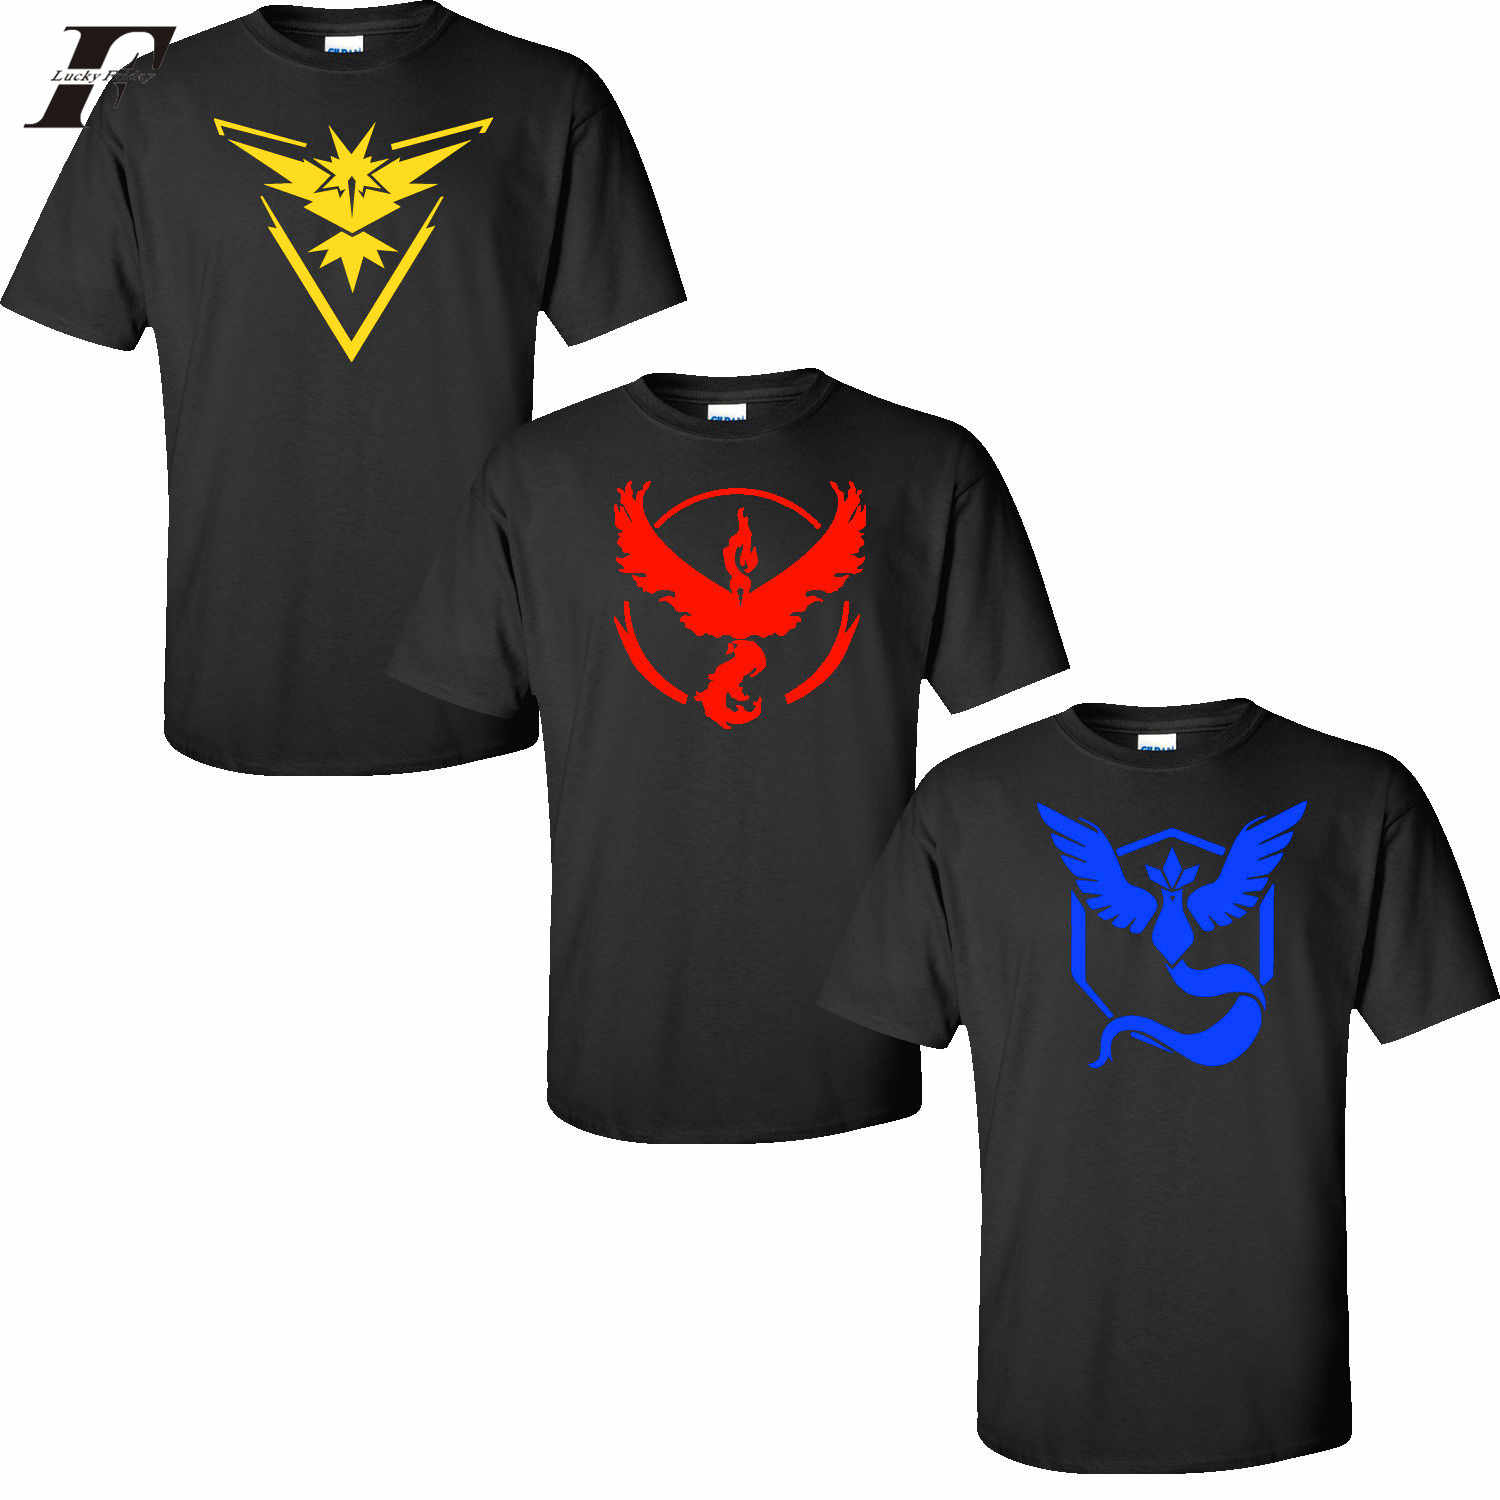 LUCKYFRIDAYF Kpop pokemon go plus t-shirt pokemon go shirt Team Valor Mystic Instinct t shirt pokemon go t shirt pokemon t-shirt